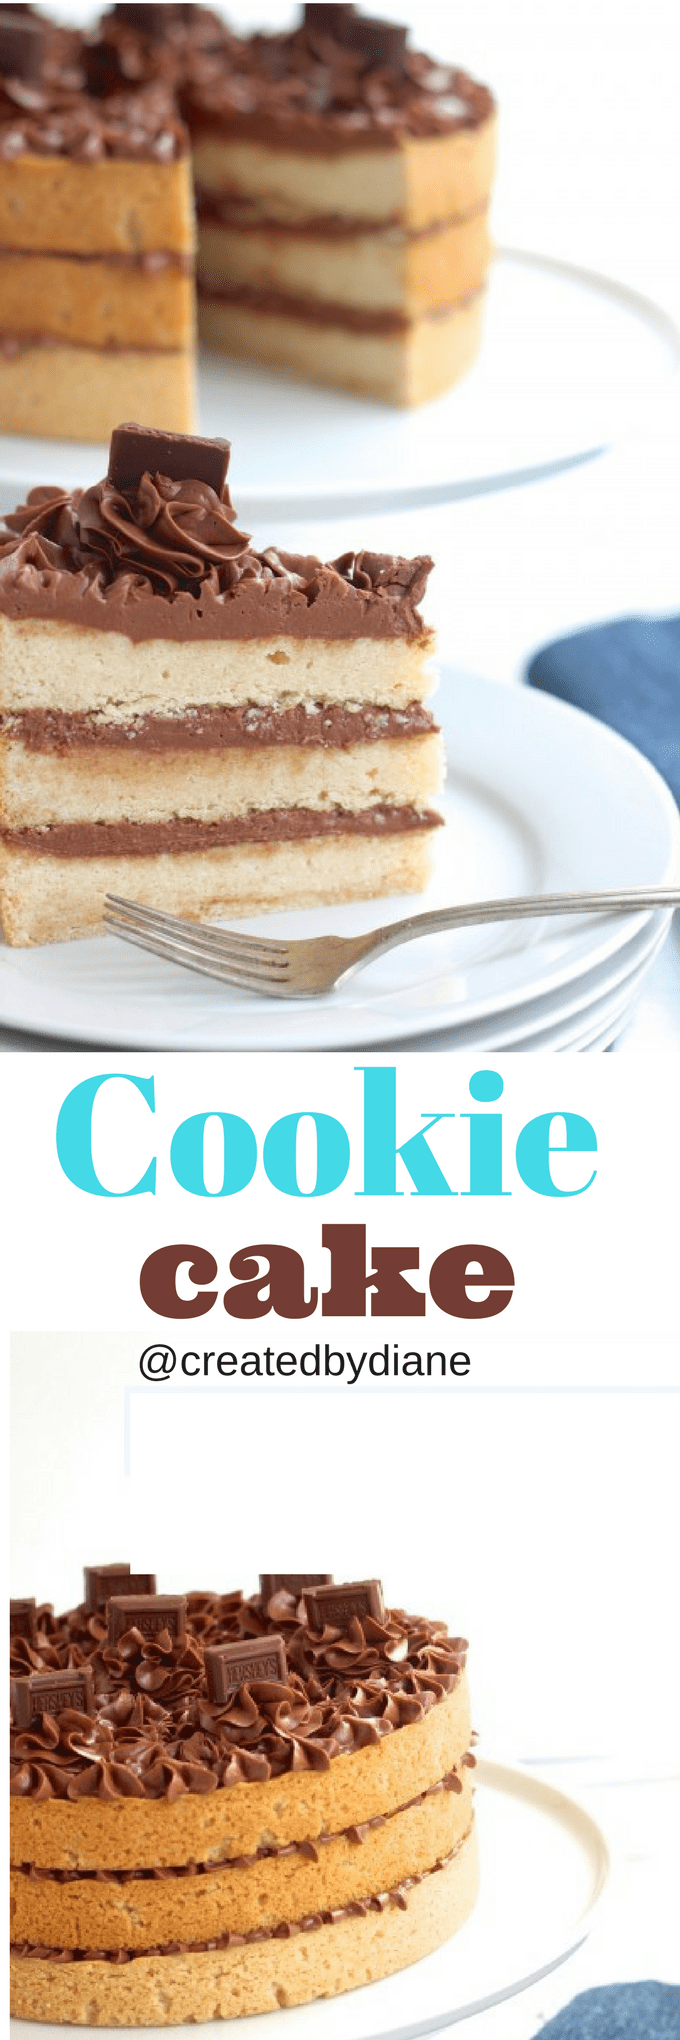 hersheys chocolate sugar cookie cake @createdbydiane